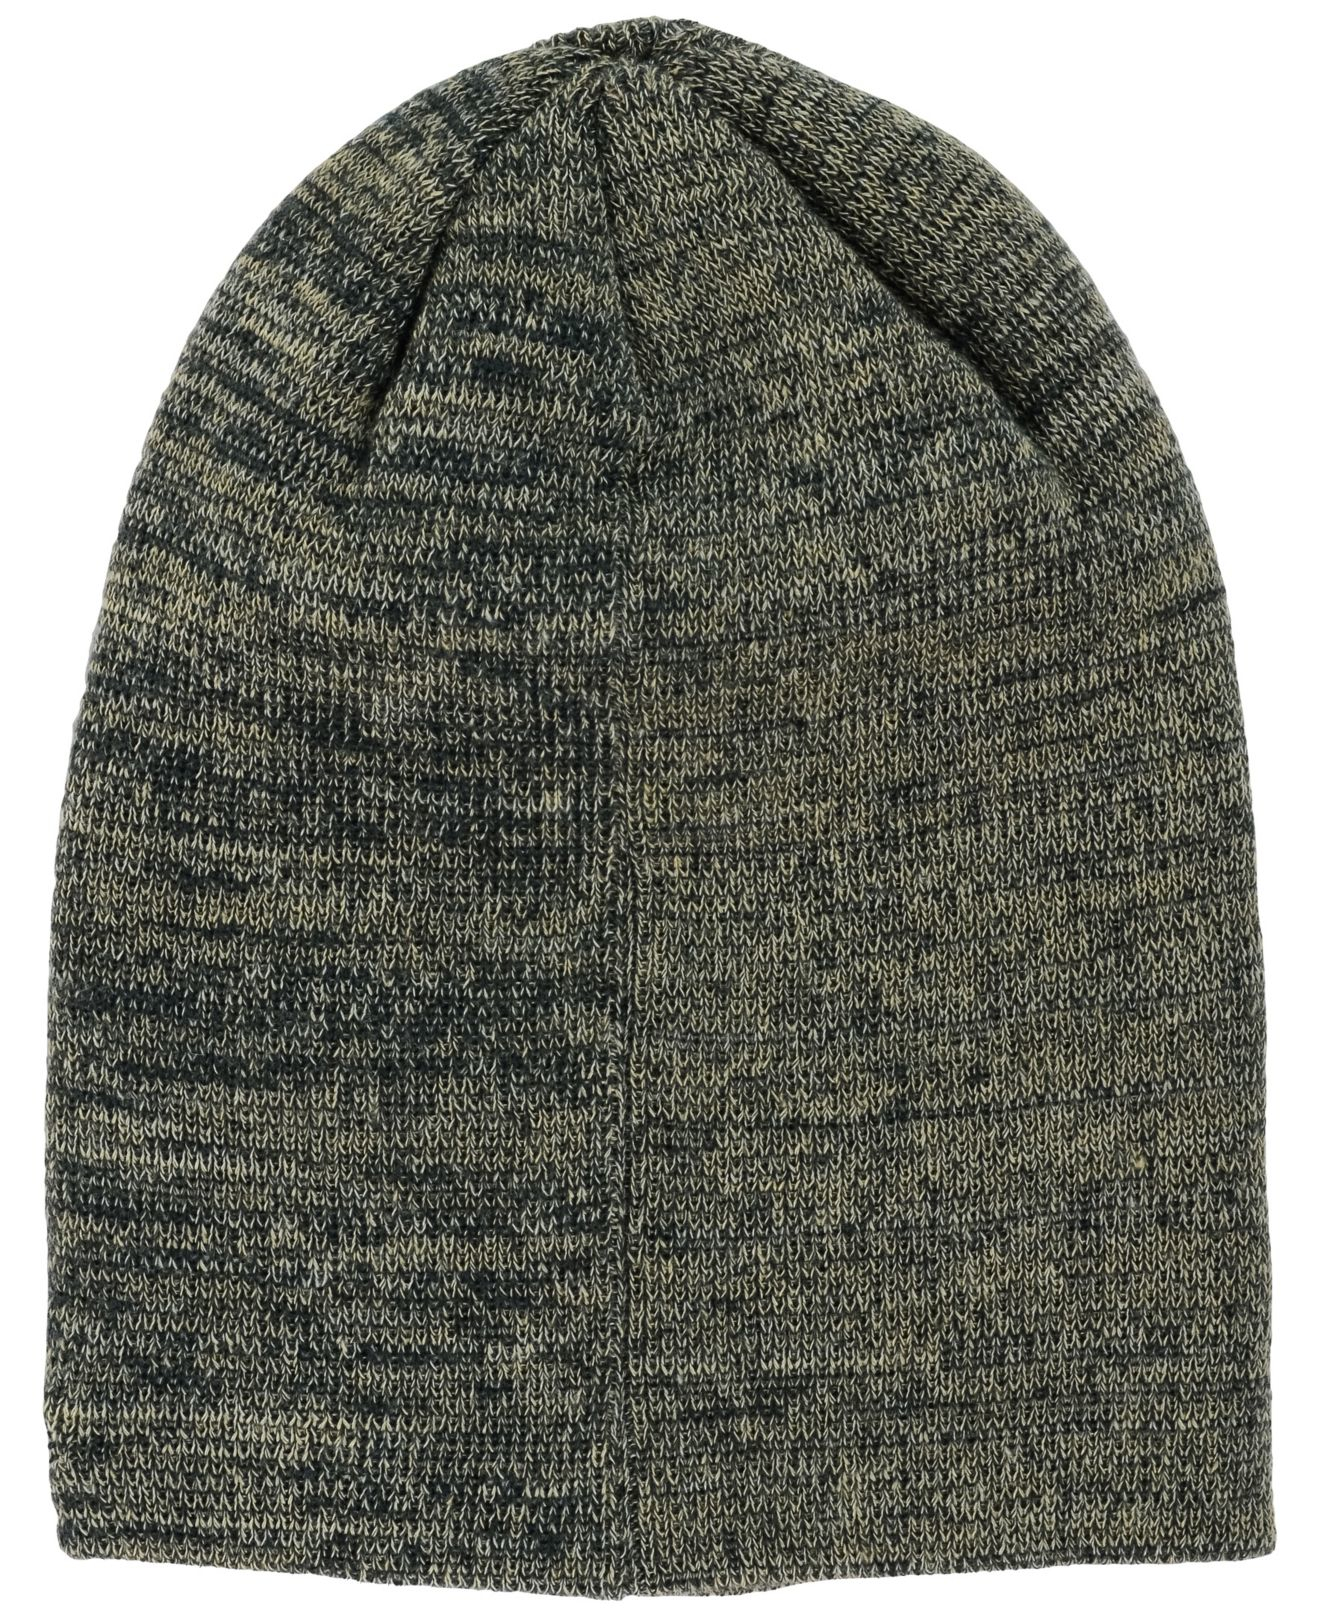 reputable site 9d8f3 3cbb4 Lyst - KTZ Oakland Raiders Slouch It Knit Hat in Gray for Men